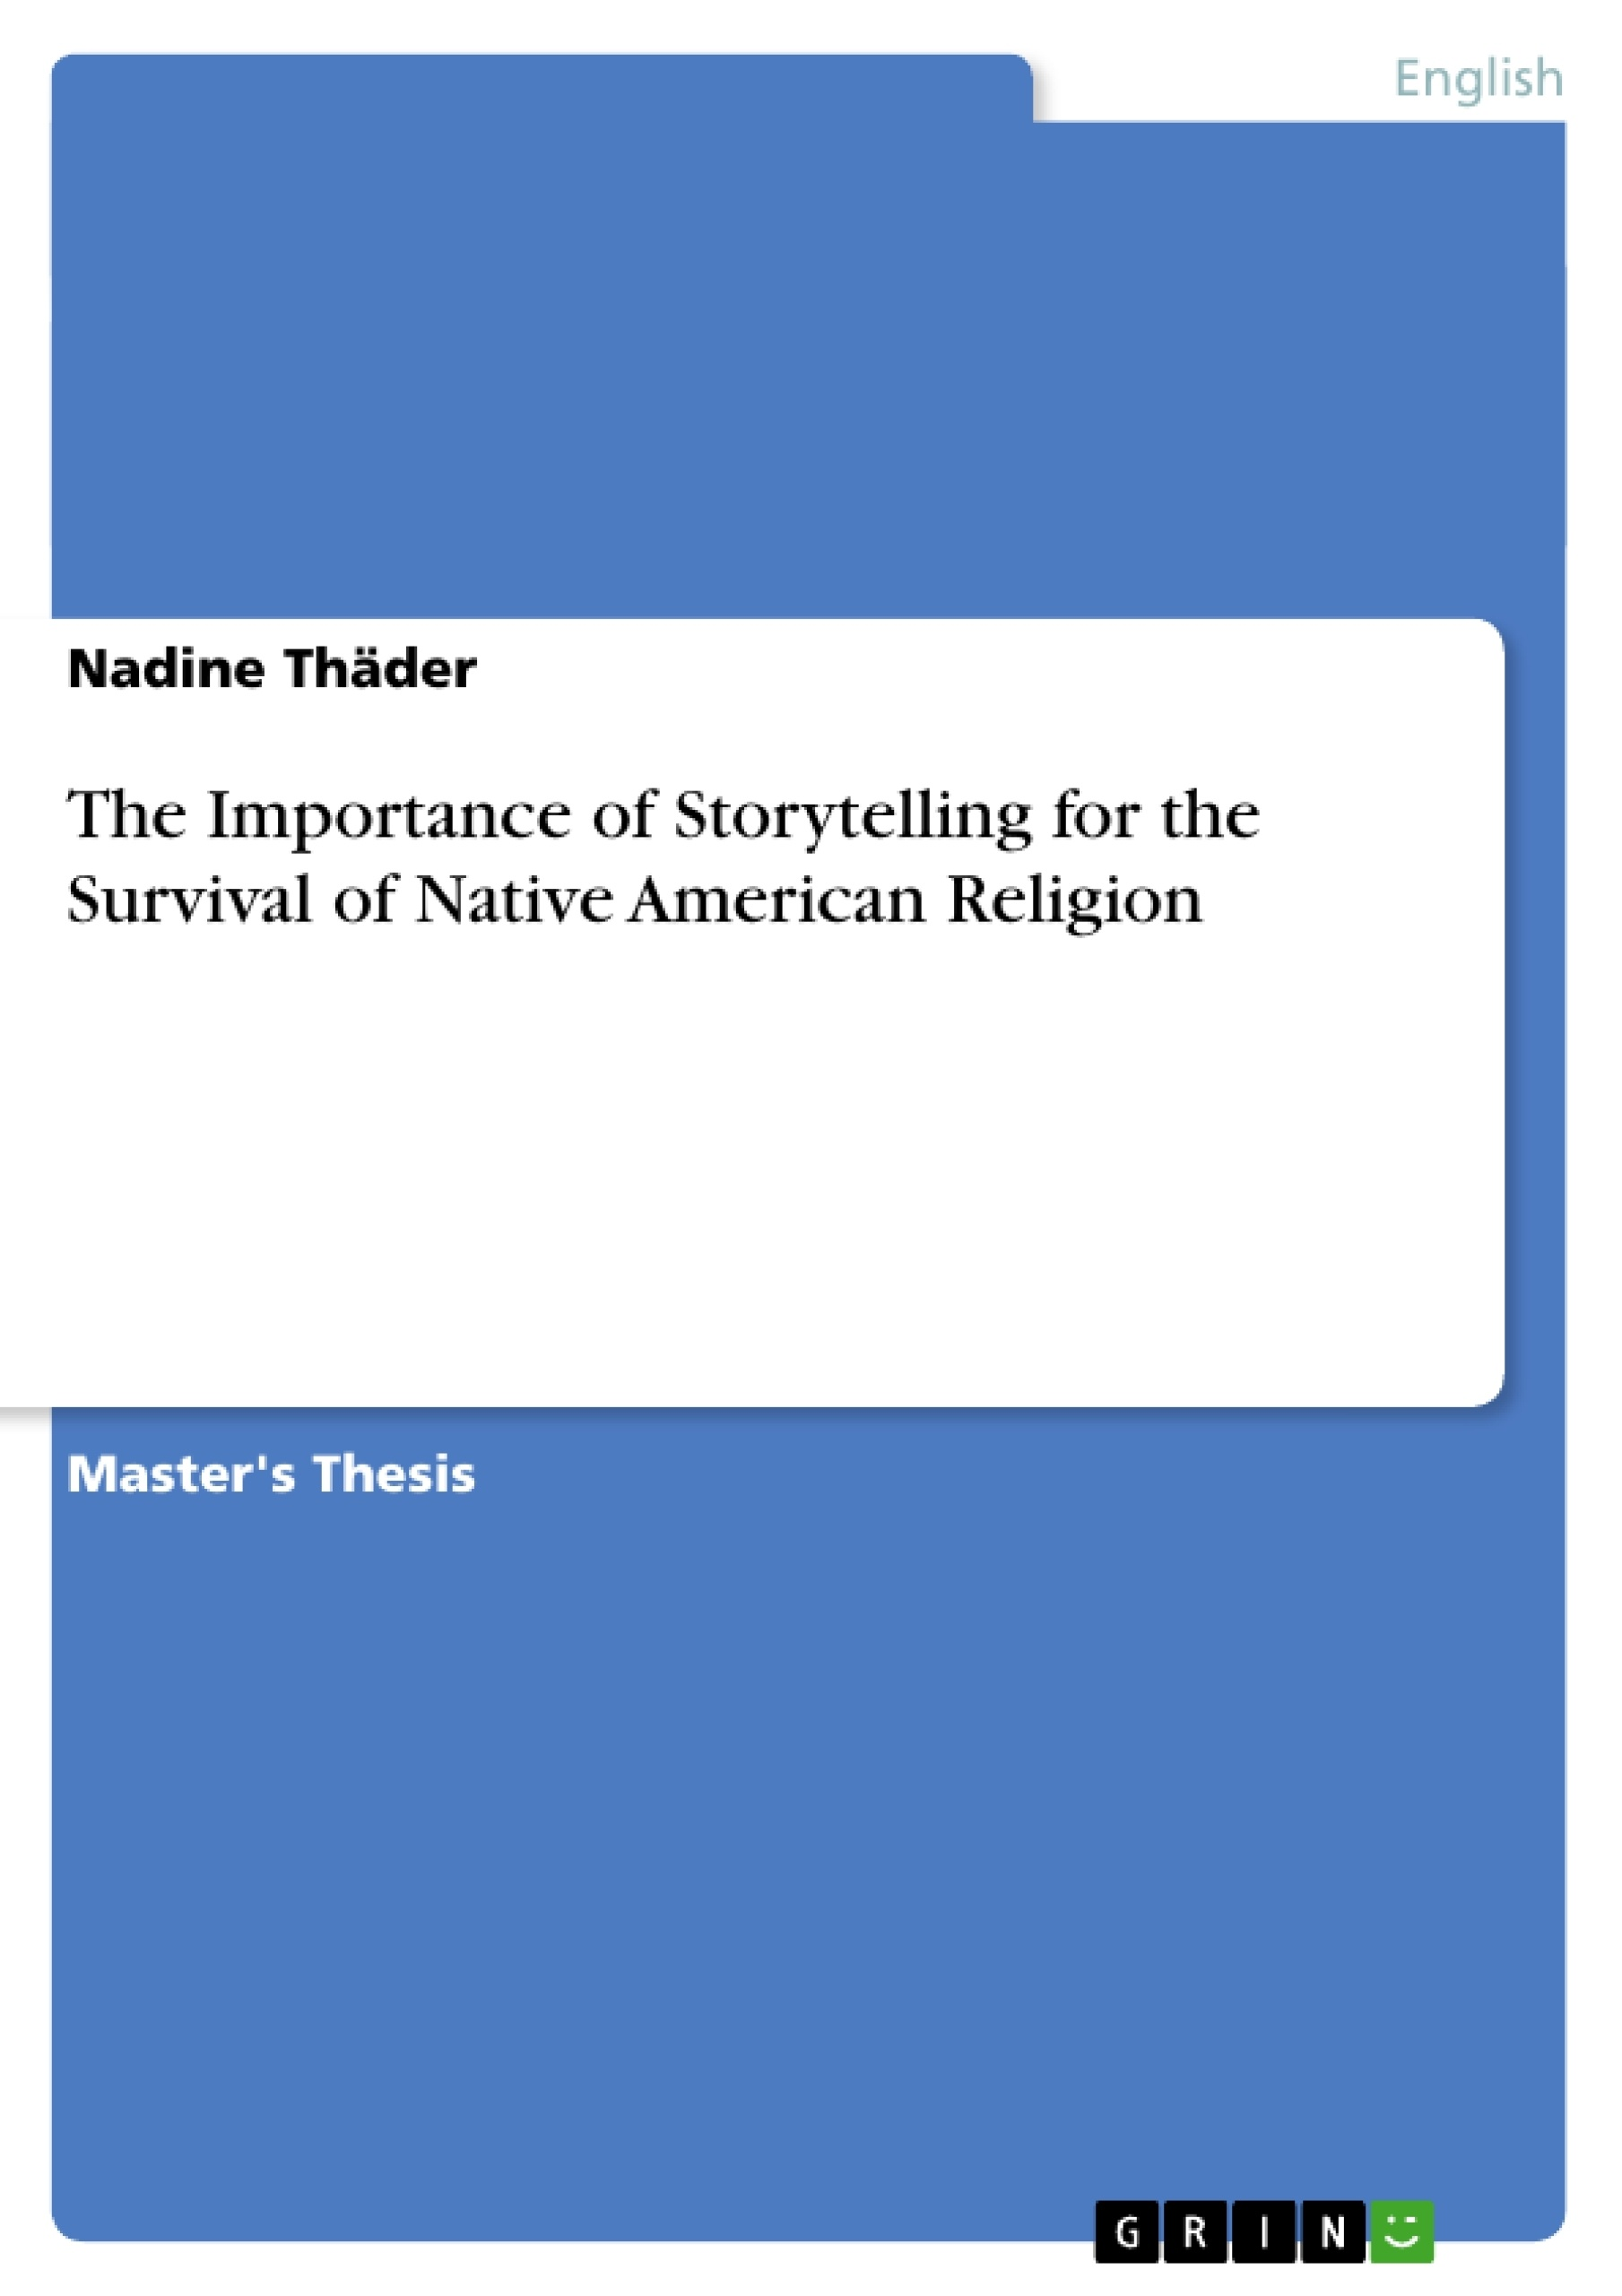 Masters of religion thesis